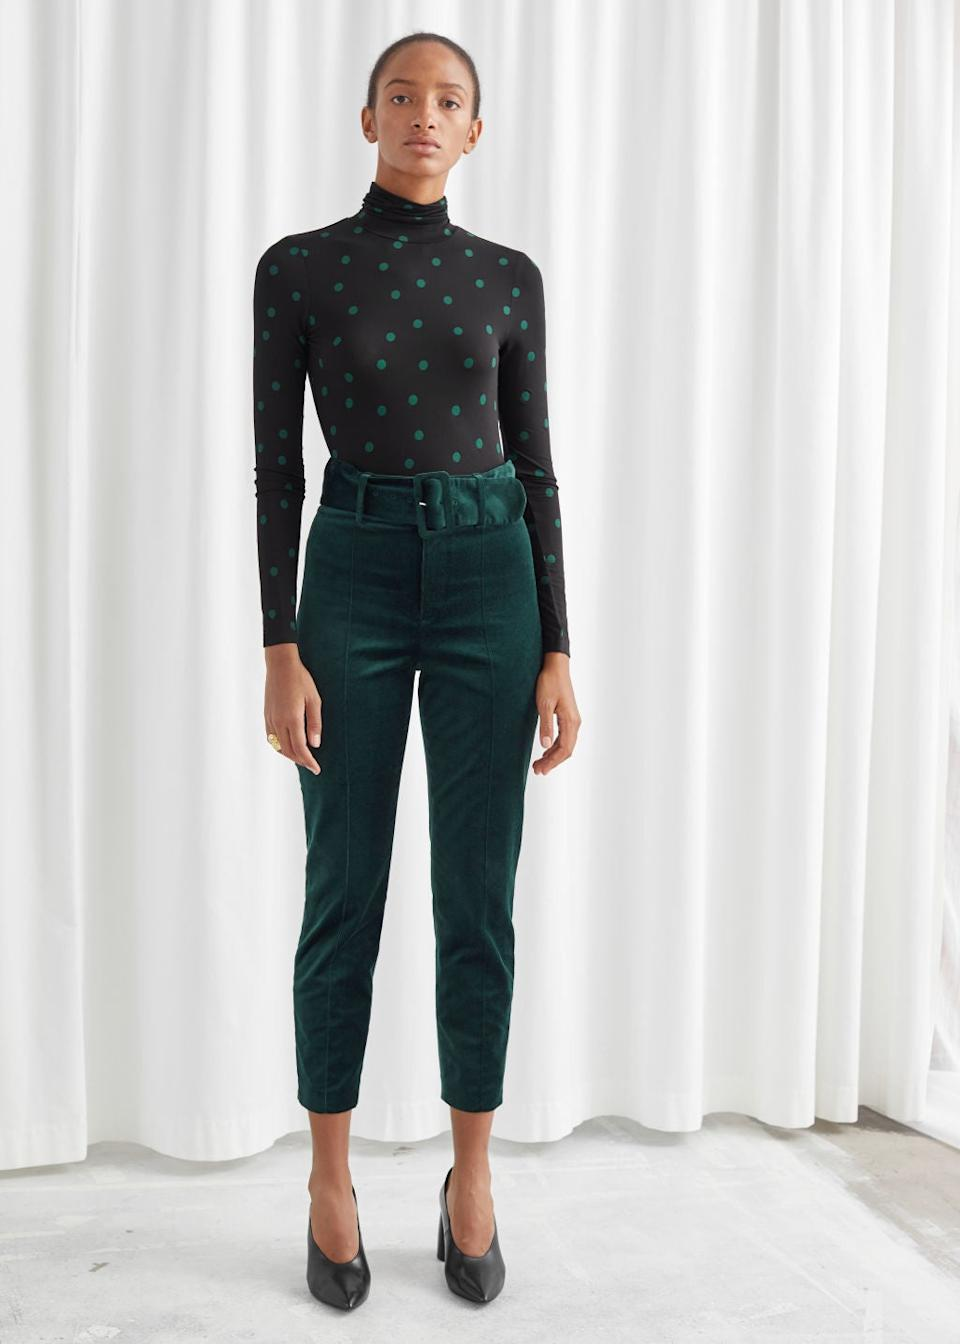 """<h3><a href=""""https://www.stories.com/en_usd/clothing/trousers/straight-trousers/product.belted-velvet-leggings-green.0585702004.html"""" rel=""""nofollow noopener"""" target=""""_blank"""" data-ylk=""""slk:& Other Stories Belted Velvet Leggings"""" class=""""link rapid-noclick-resp"""">& Other Stories Belted Velvet Leggings</a></h3><br>These dreamy velvet trousers secured a top-bought spot in our best of <a href=""""https://refinery29.com/en-us/2020/01/9211081/mlk-sales-fashion-clothing-martin-luther-king-jr-day-2020"""" rel=""""nofollow noopener"""" target=""""_blank"""" data-ylk=""""slk:MLK-weekend sale coverage"""" class=""""link rapid-noclick-resp"""">MLK-weekend sale coverage</a> — and are still selling strong with a sweet $40 price tag. <br><br><strong>& Other Stories</strong> Belted Velvet Leggings, $, available at <a href=""""https://www.stories.com/en_usd/clothing/trousers/straight-trousers/product.belted-velvet-leggings-green.0585702004.html"""" rel=""""nofollow noopener"""" target=""""_blank"""" data-ylk=""""slk:& Other Stories"""" class=""""link rapid-noclick-resp"""">& Other Stories</a>"""